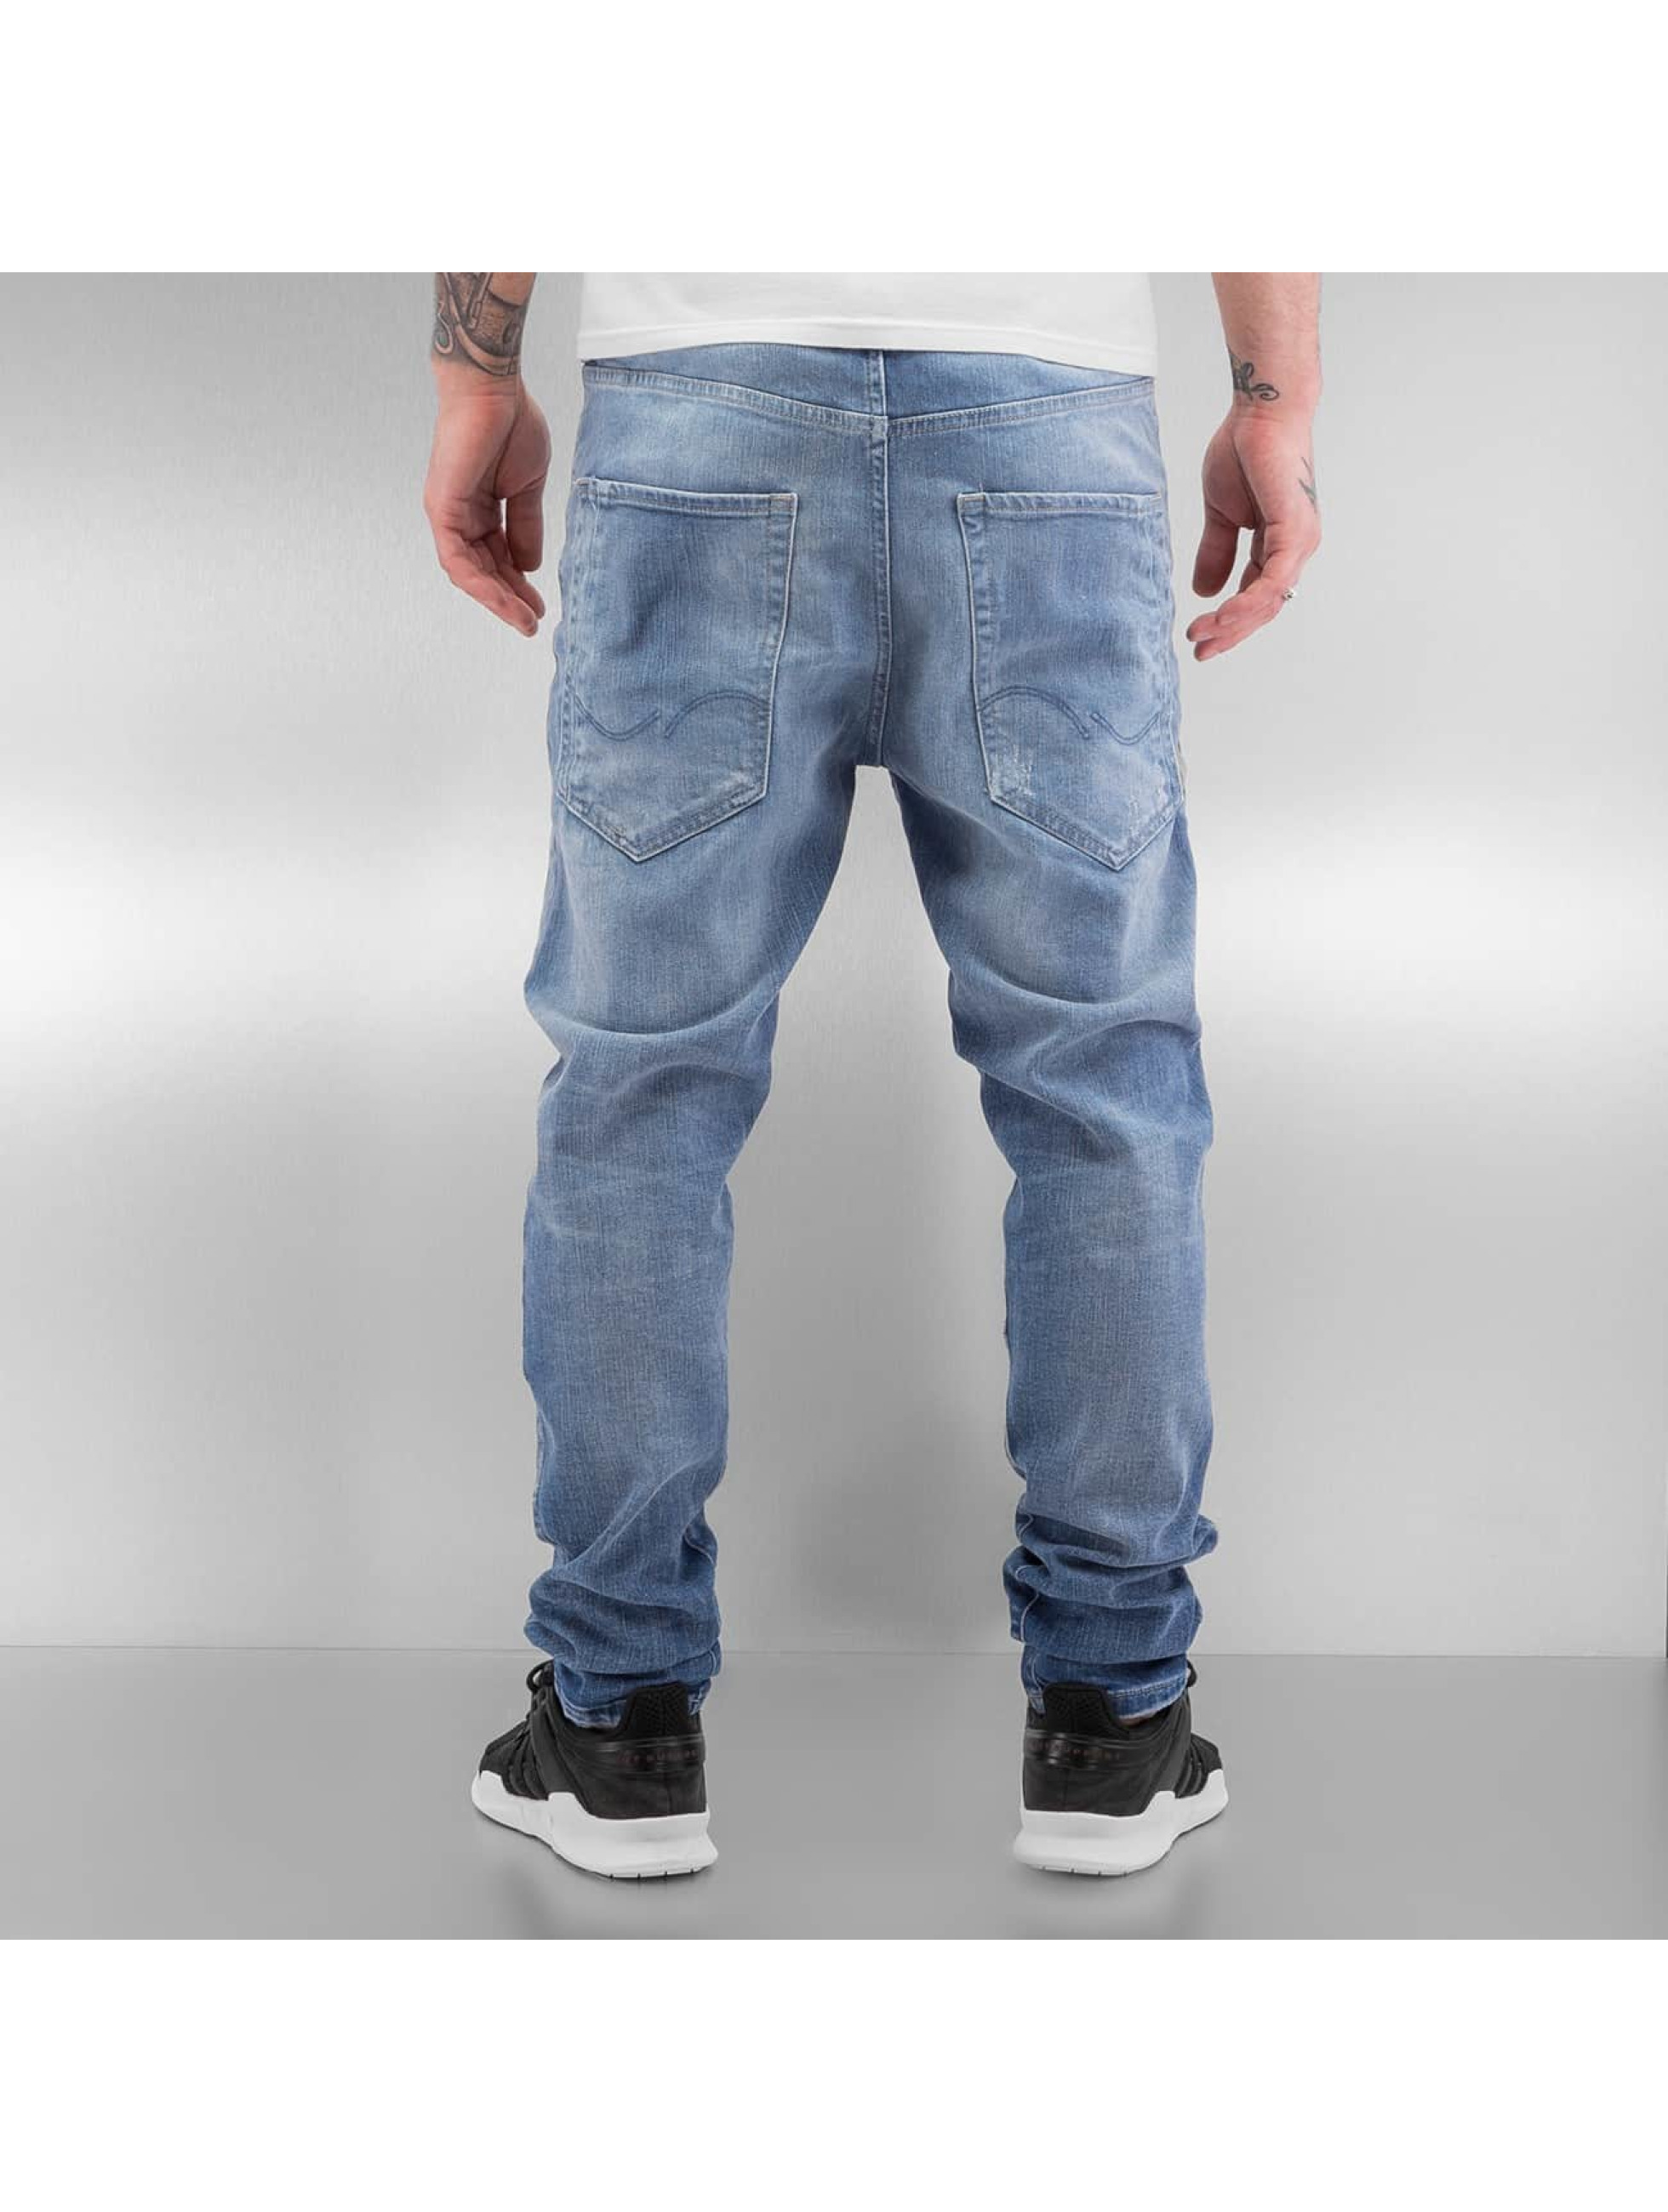 Jack & Jones Antifit jjiLuke jjEcho blue